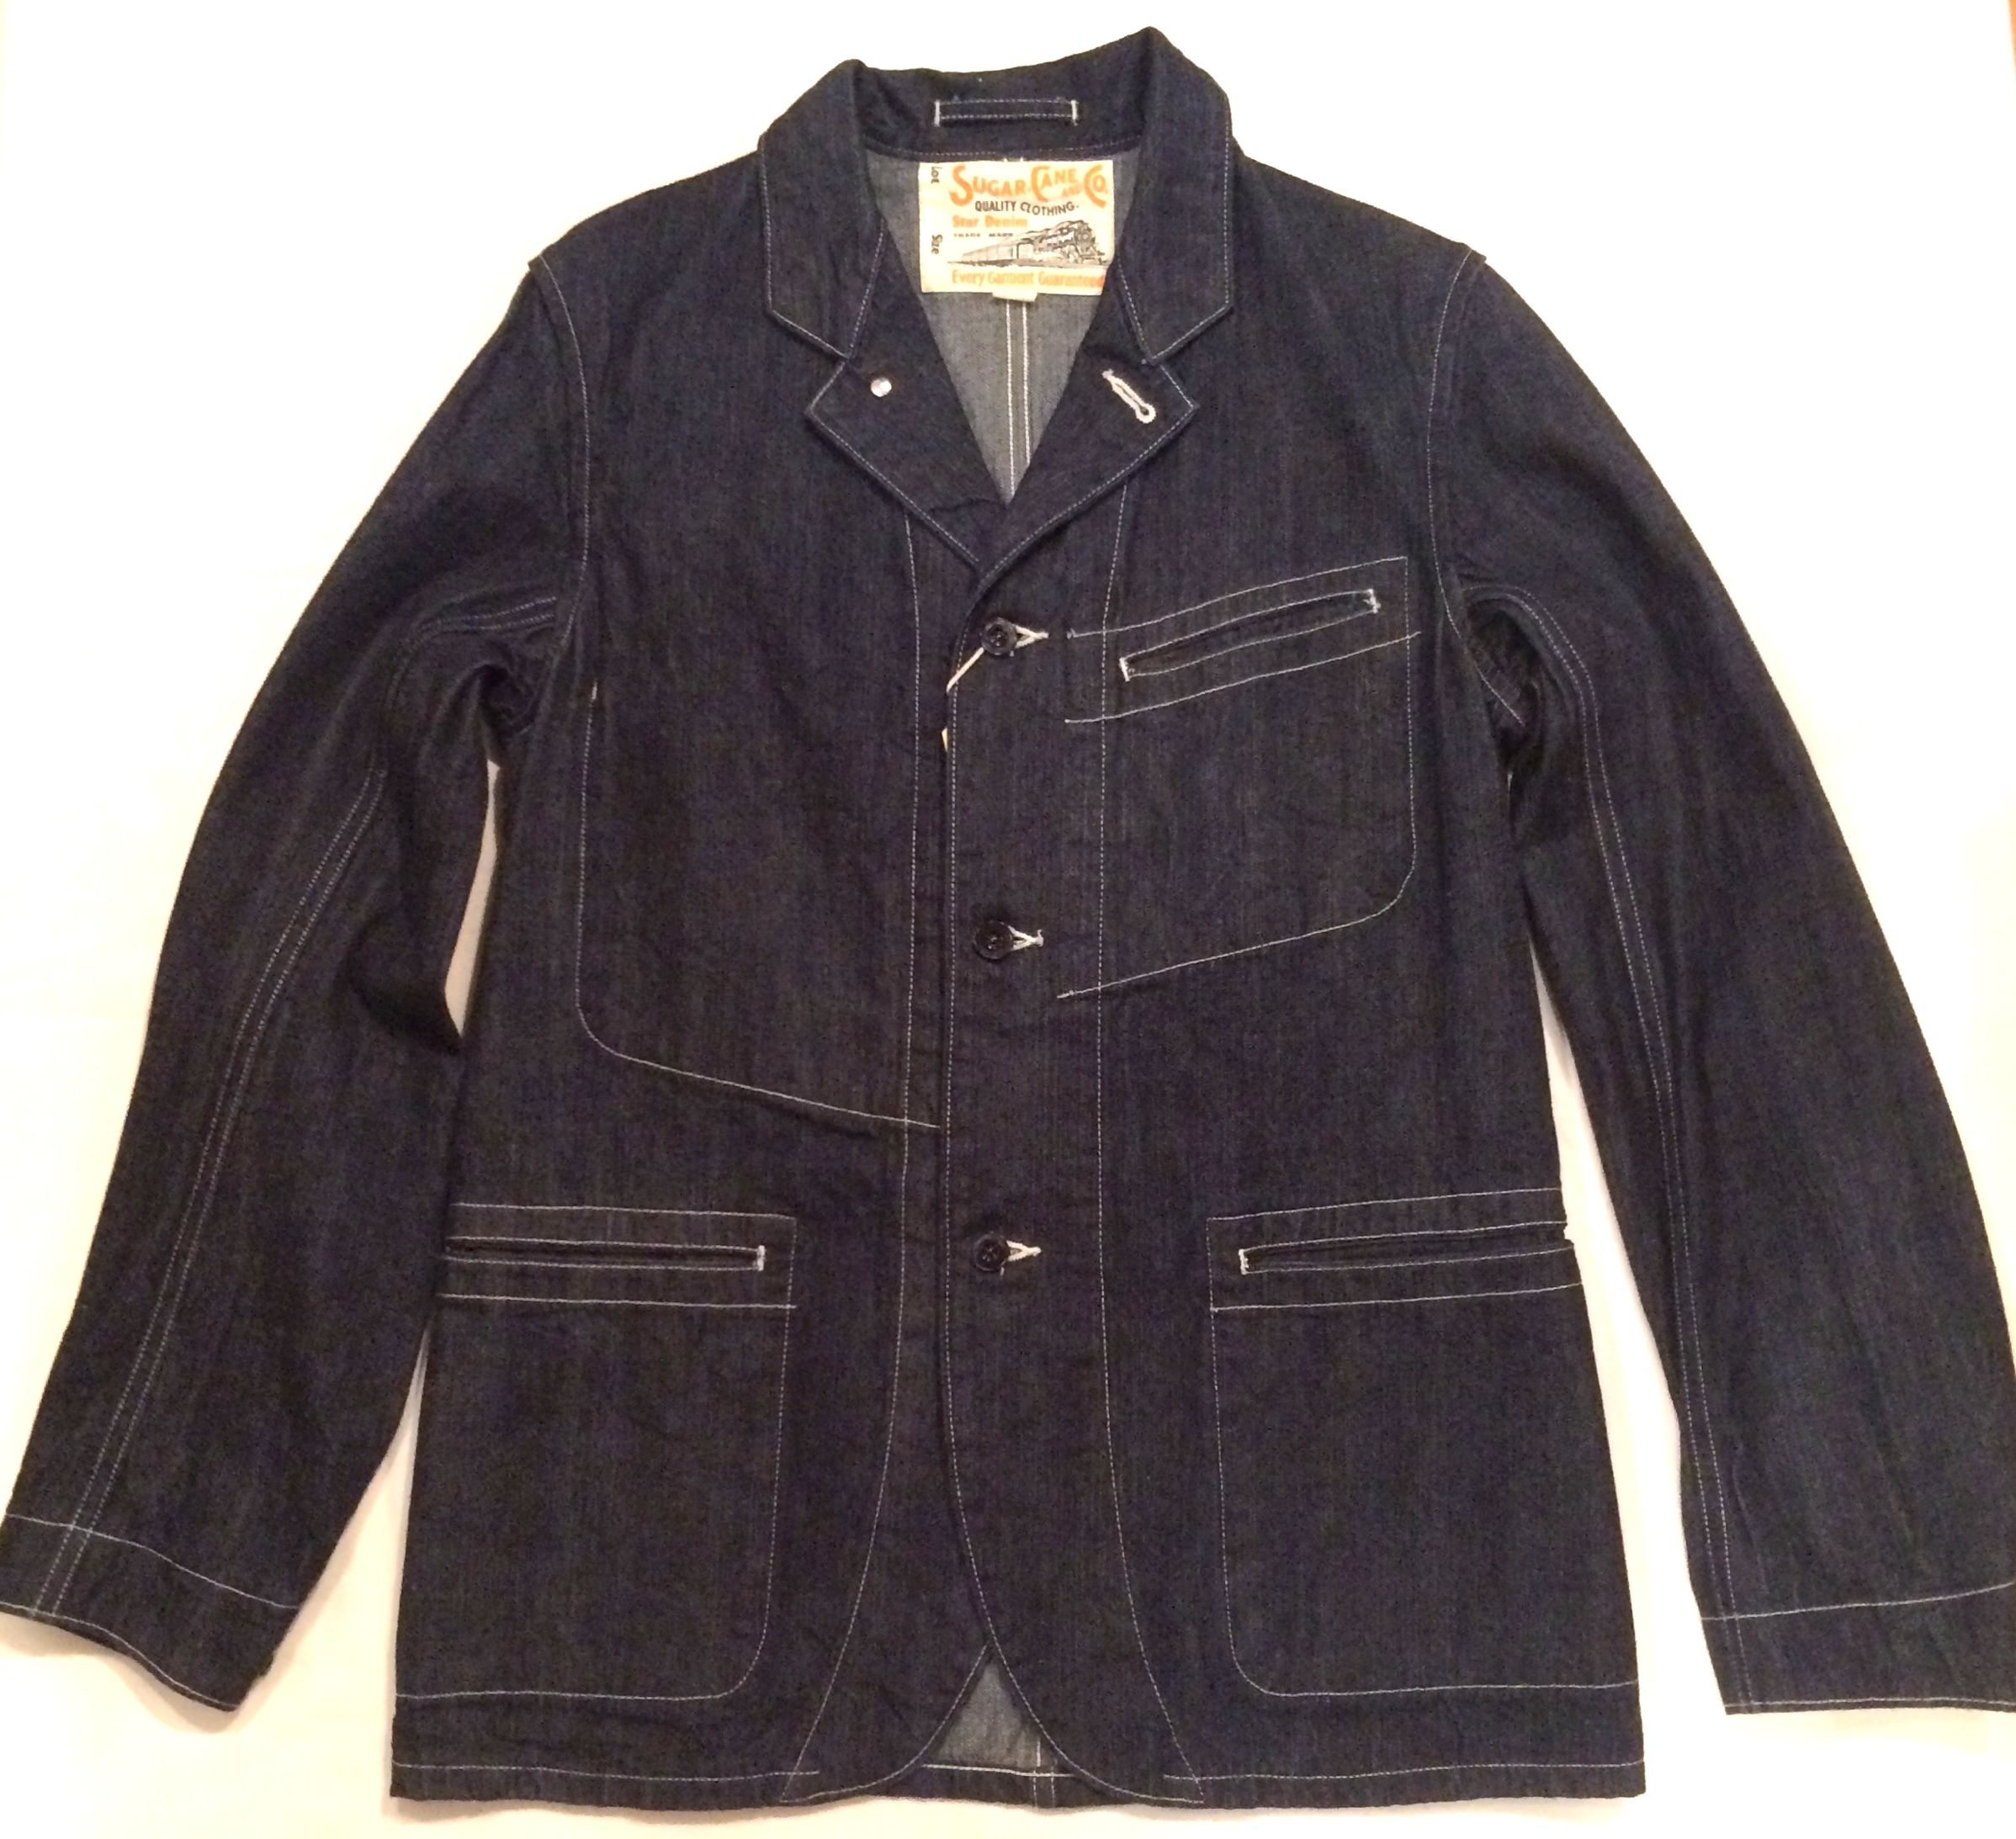 SUGAR CANE【シュガーケーン】 11.75oz.BLUE DENIM SACK COAT[SC12651]